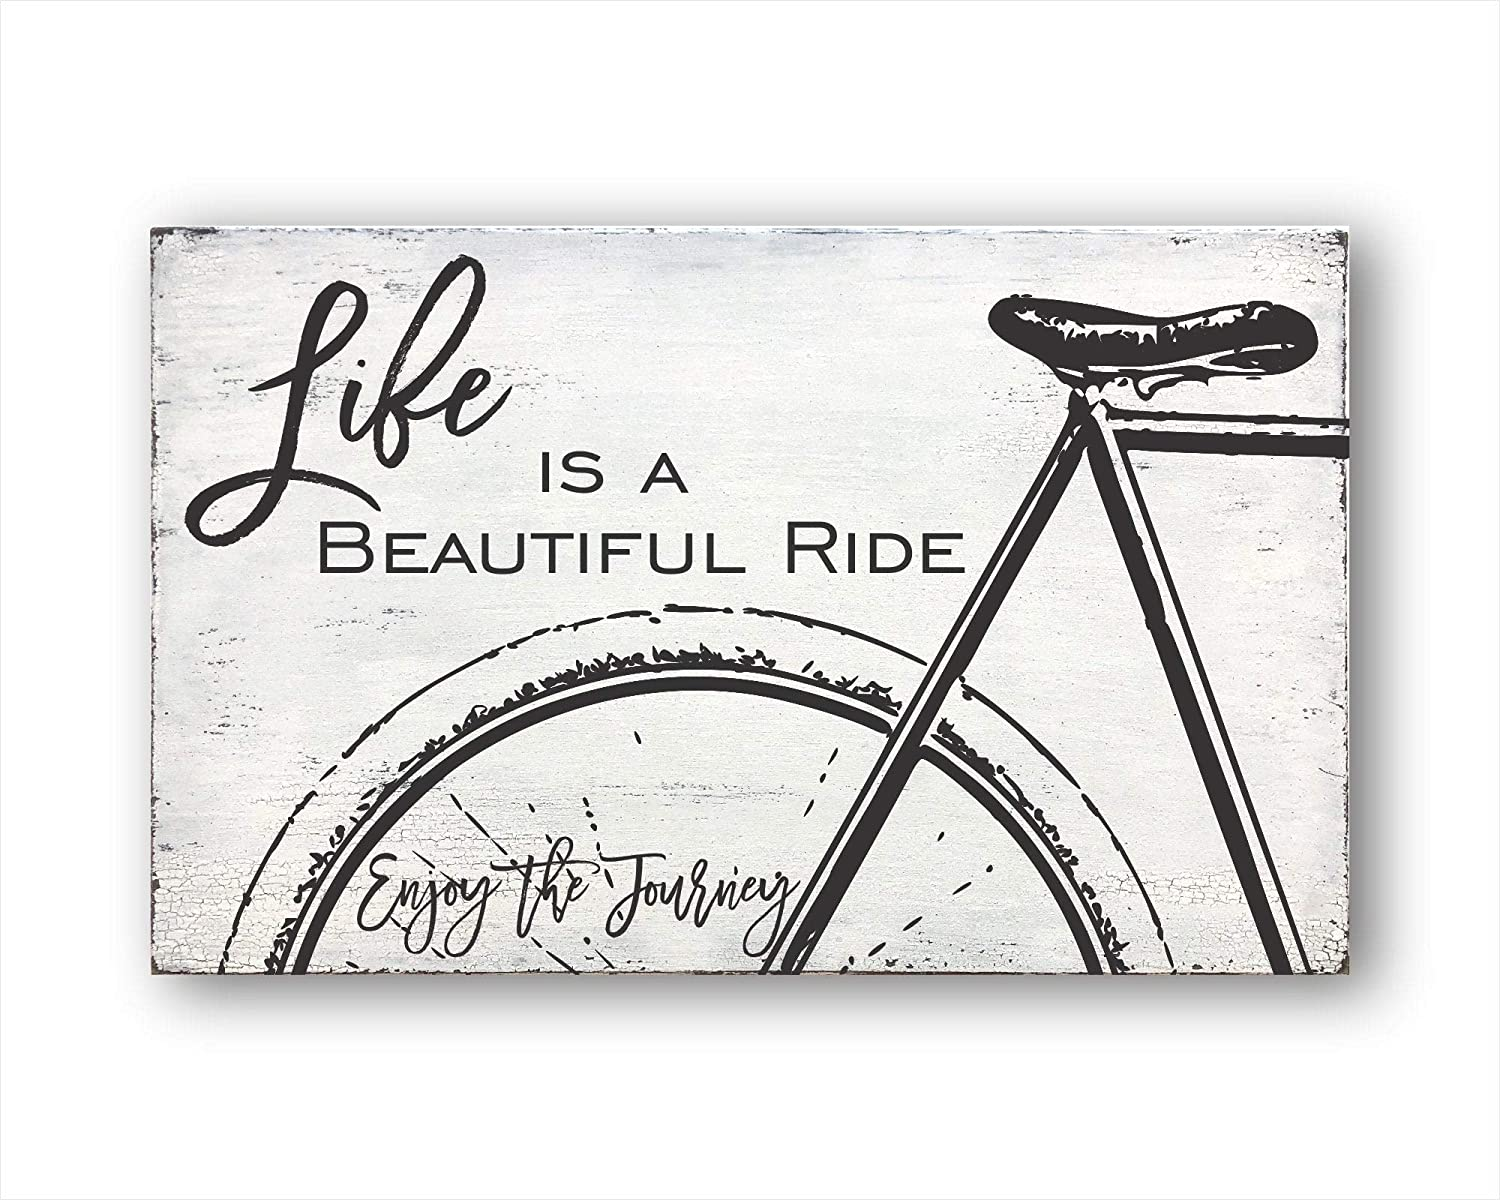 PotteLove Rustic Wooden Plaque Wall Art Hanging Wood Sign Life is A Beautiful Ride, Home Decor, Inspirational Quotes 12